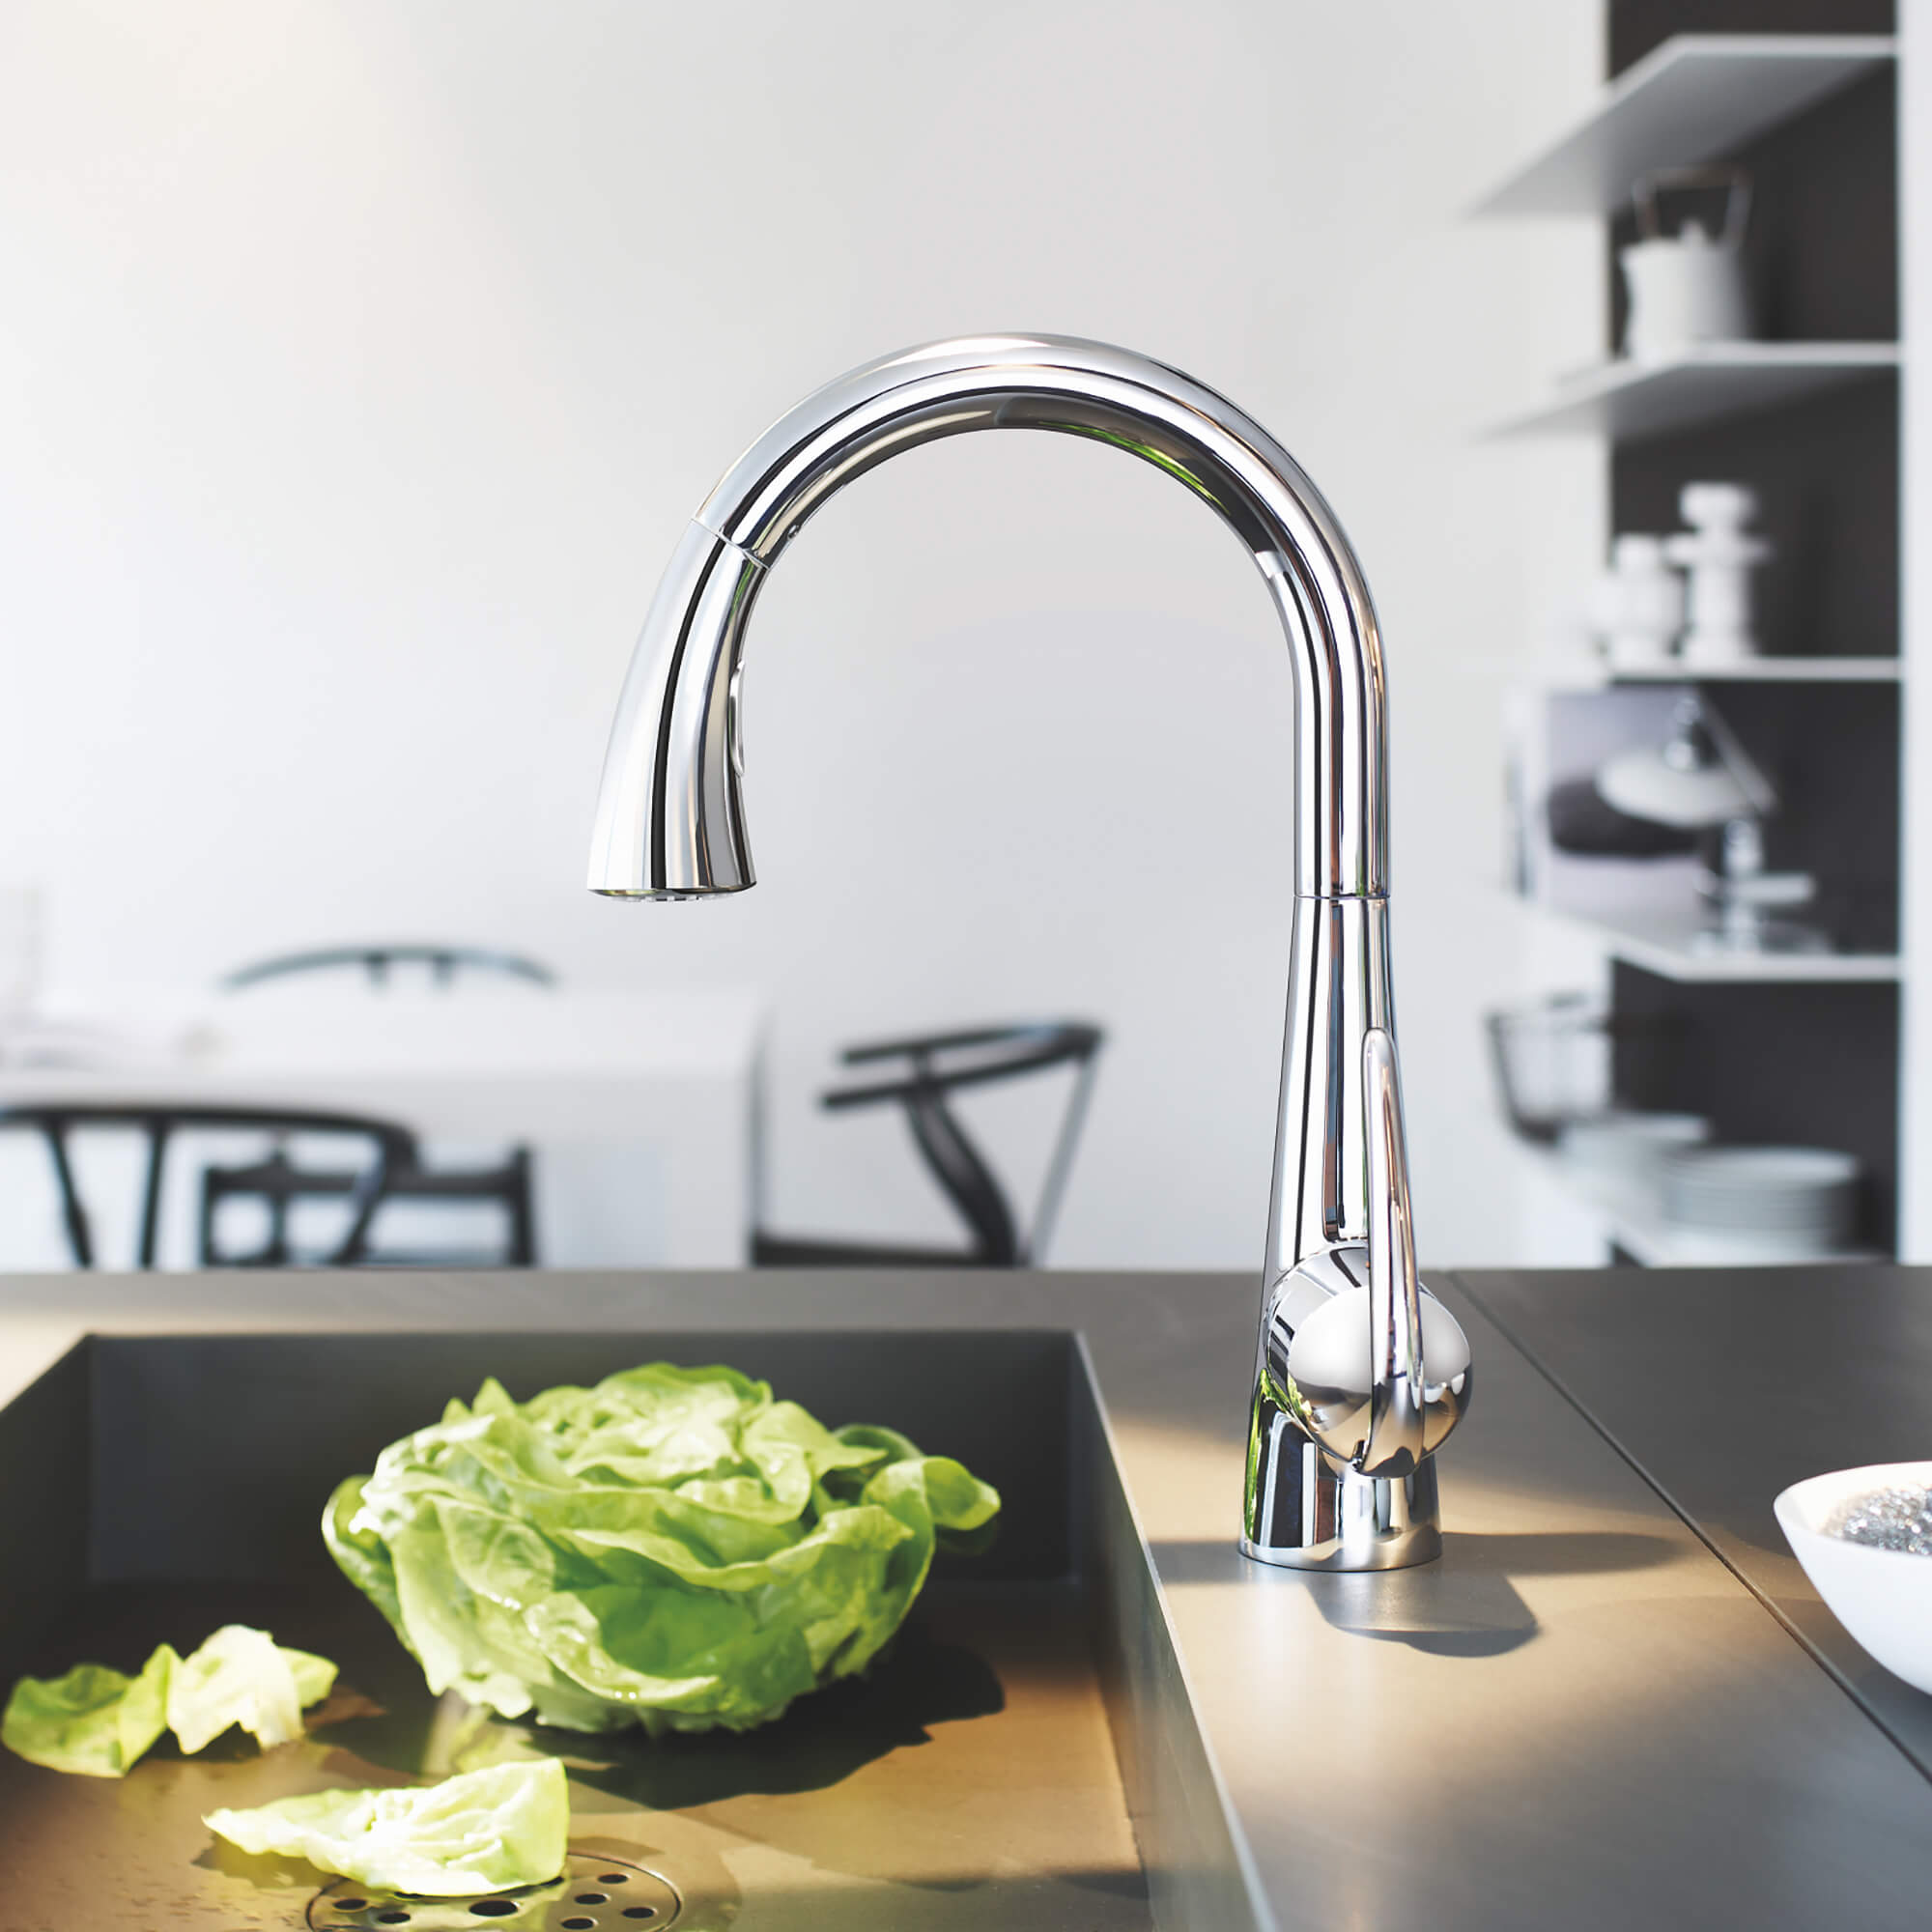 LadyLux3 Faucet in Kitchen